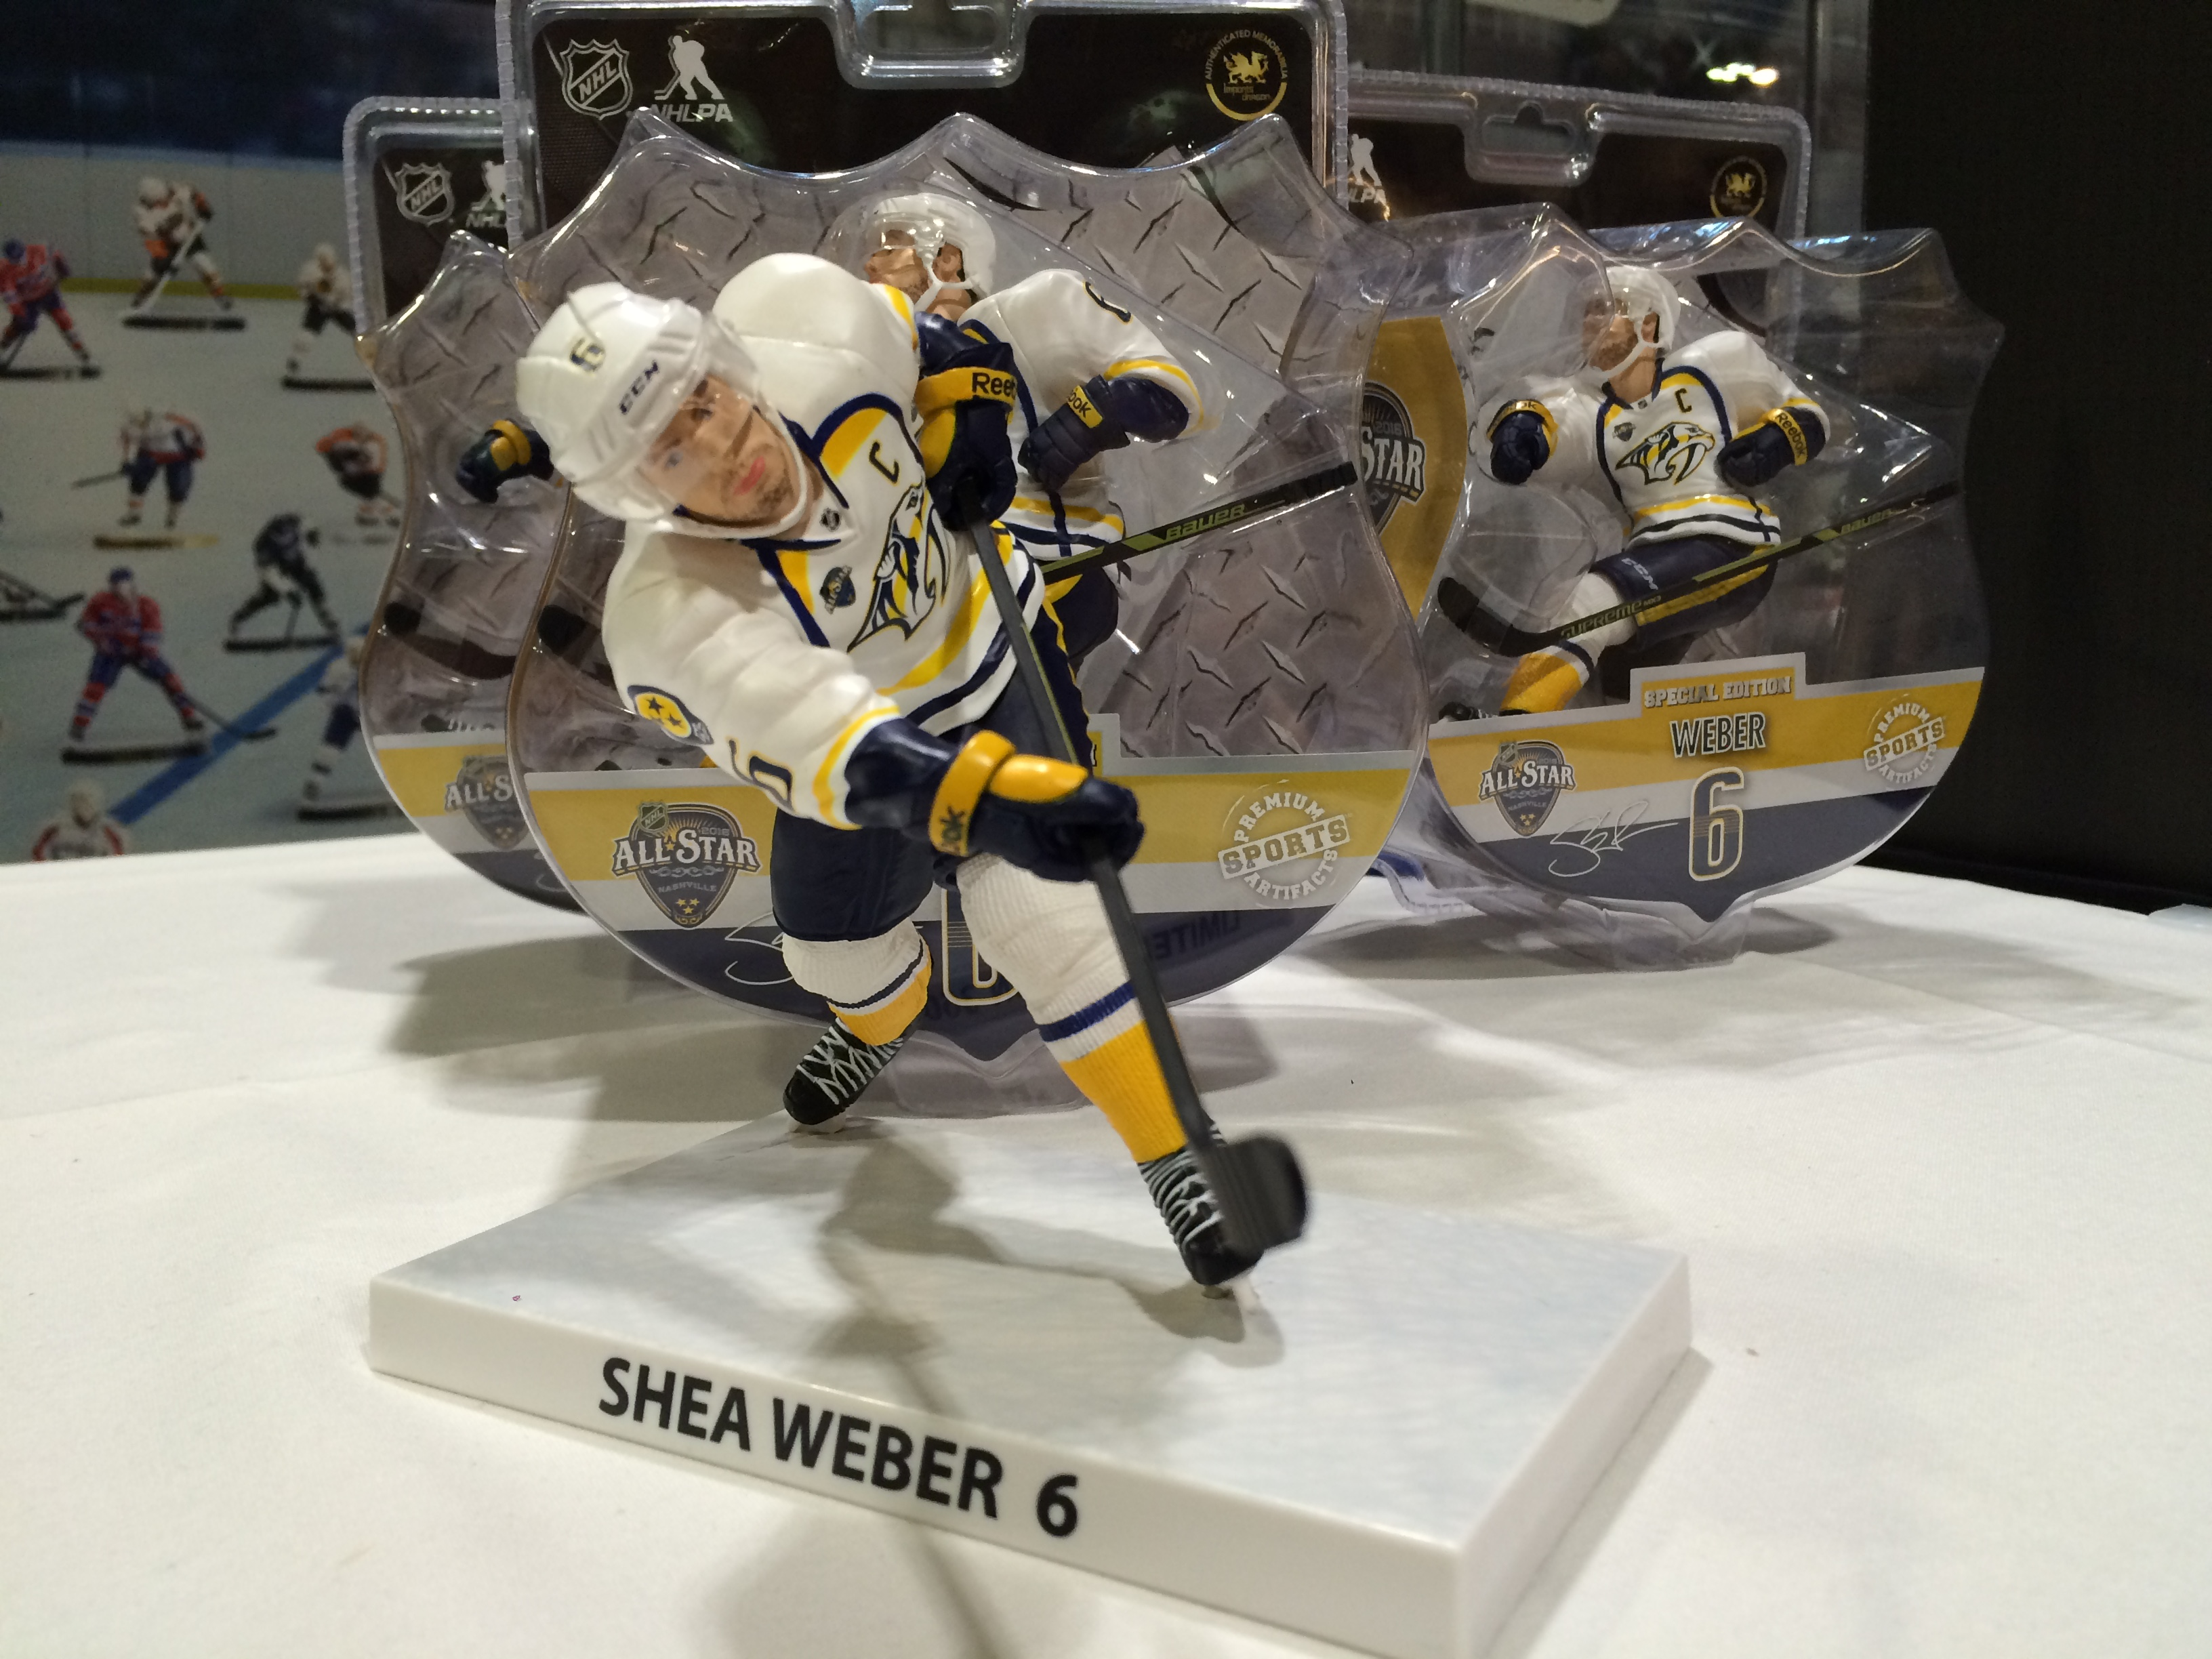 Imports Dragon offers exclusive NHL All-Star Game figures